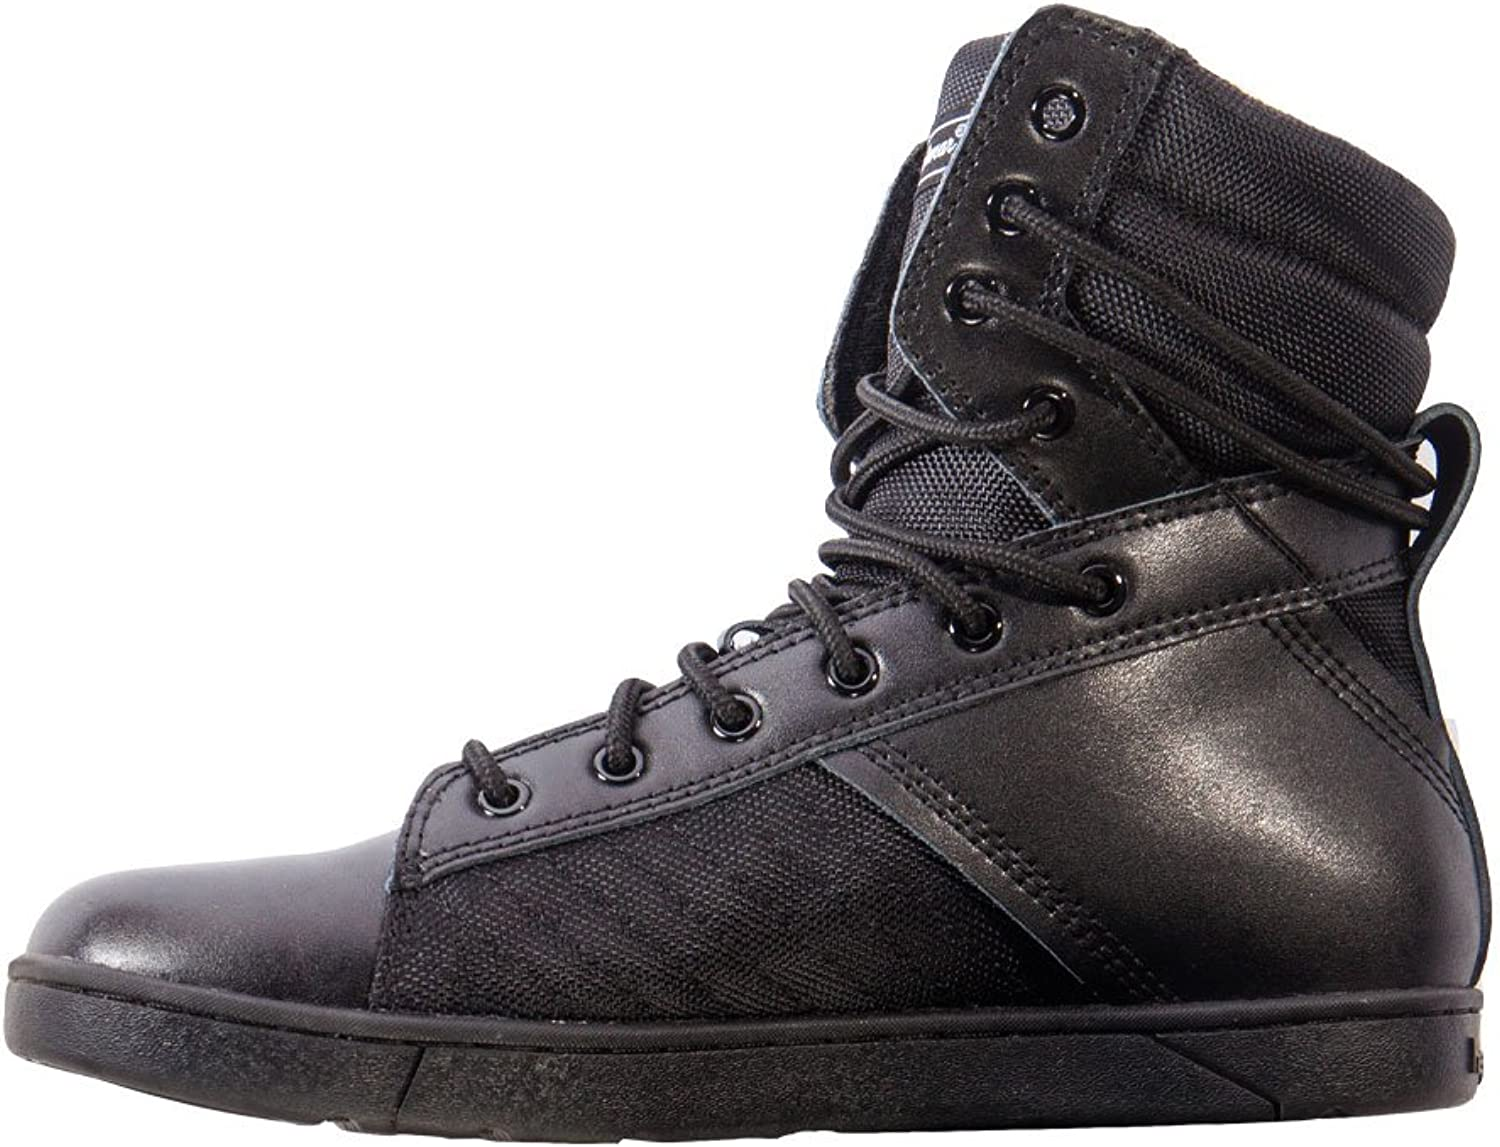 HEYDAY Footwear Tactical Trainer Black Black